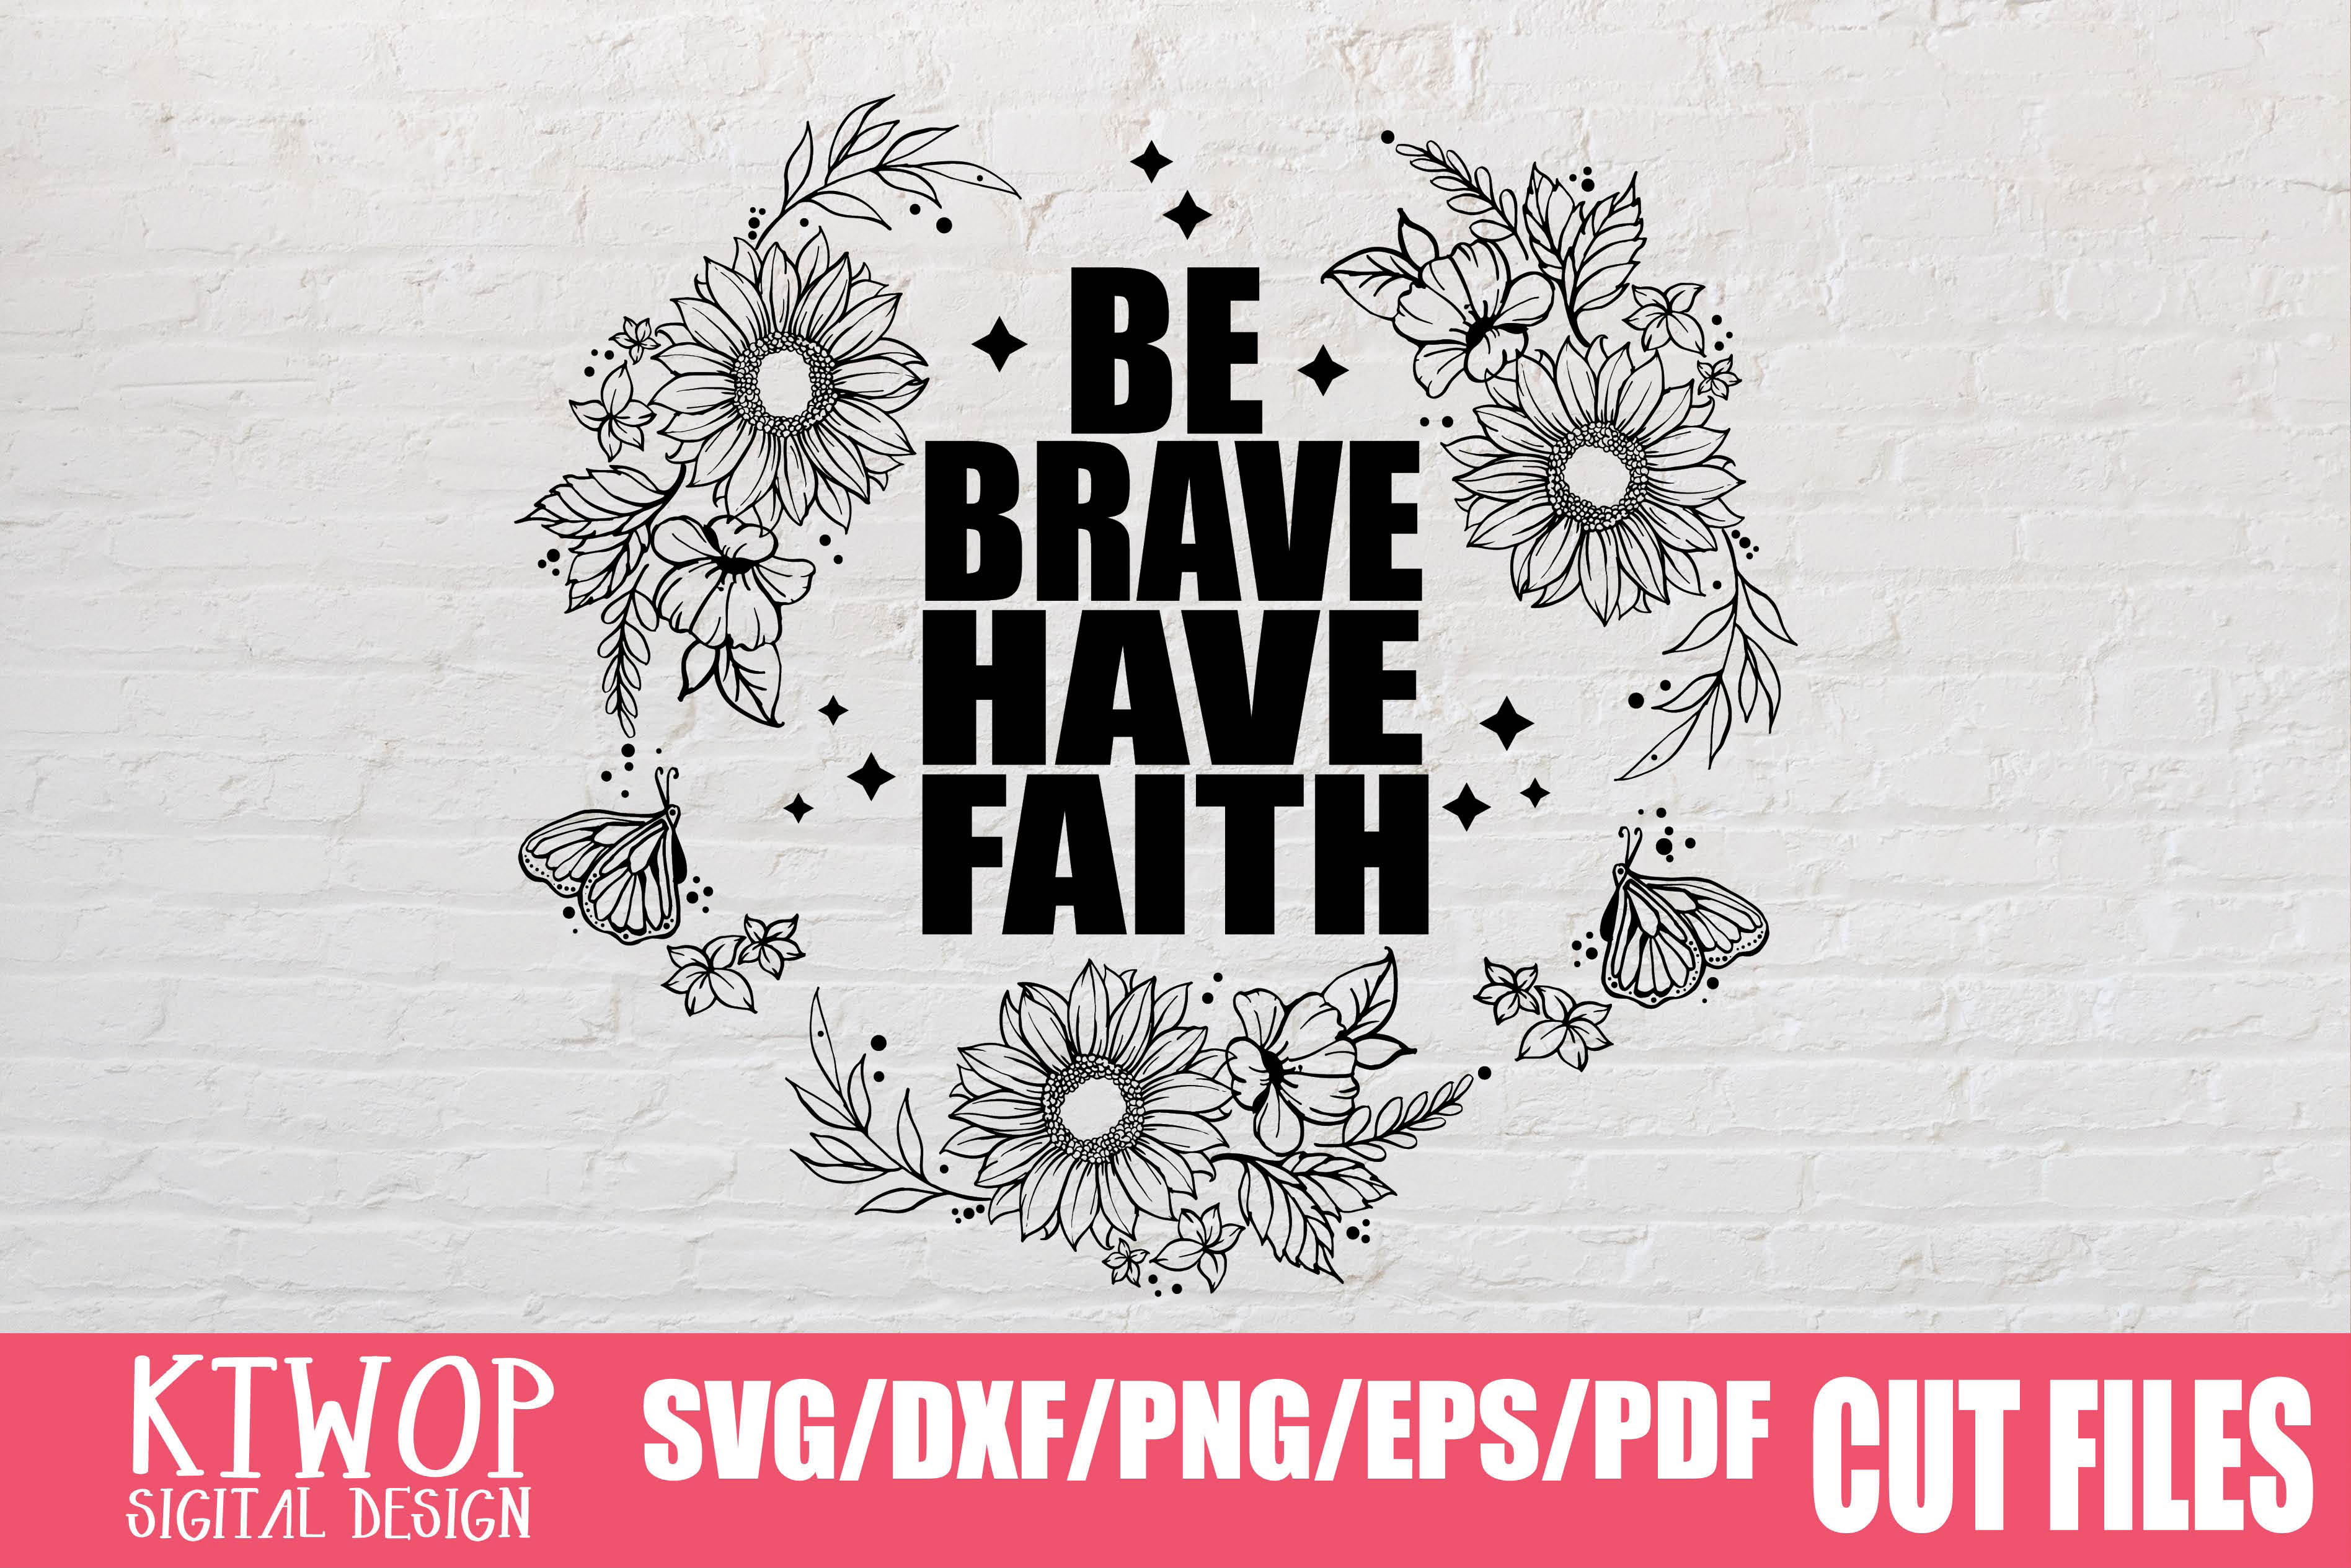 Download Free Be Brave Have Faith Graphic By Ktwop Creative Fabrica for Cricut Explore, Silhouette and other cutting machines.